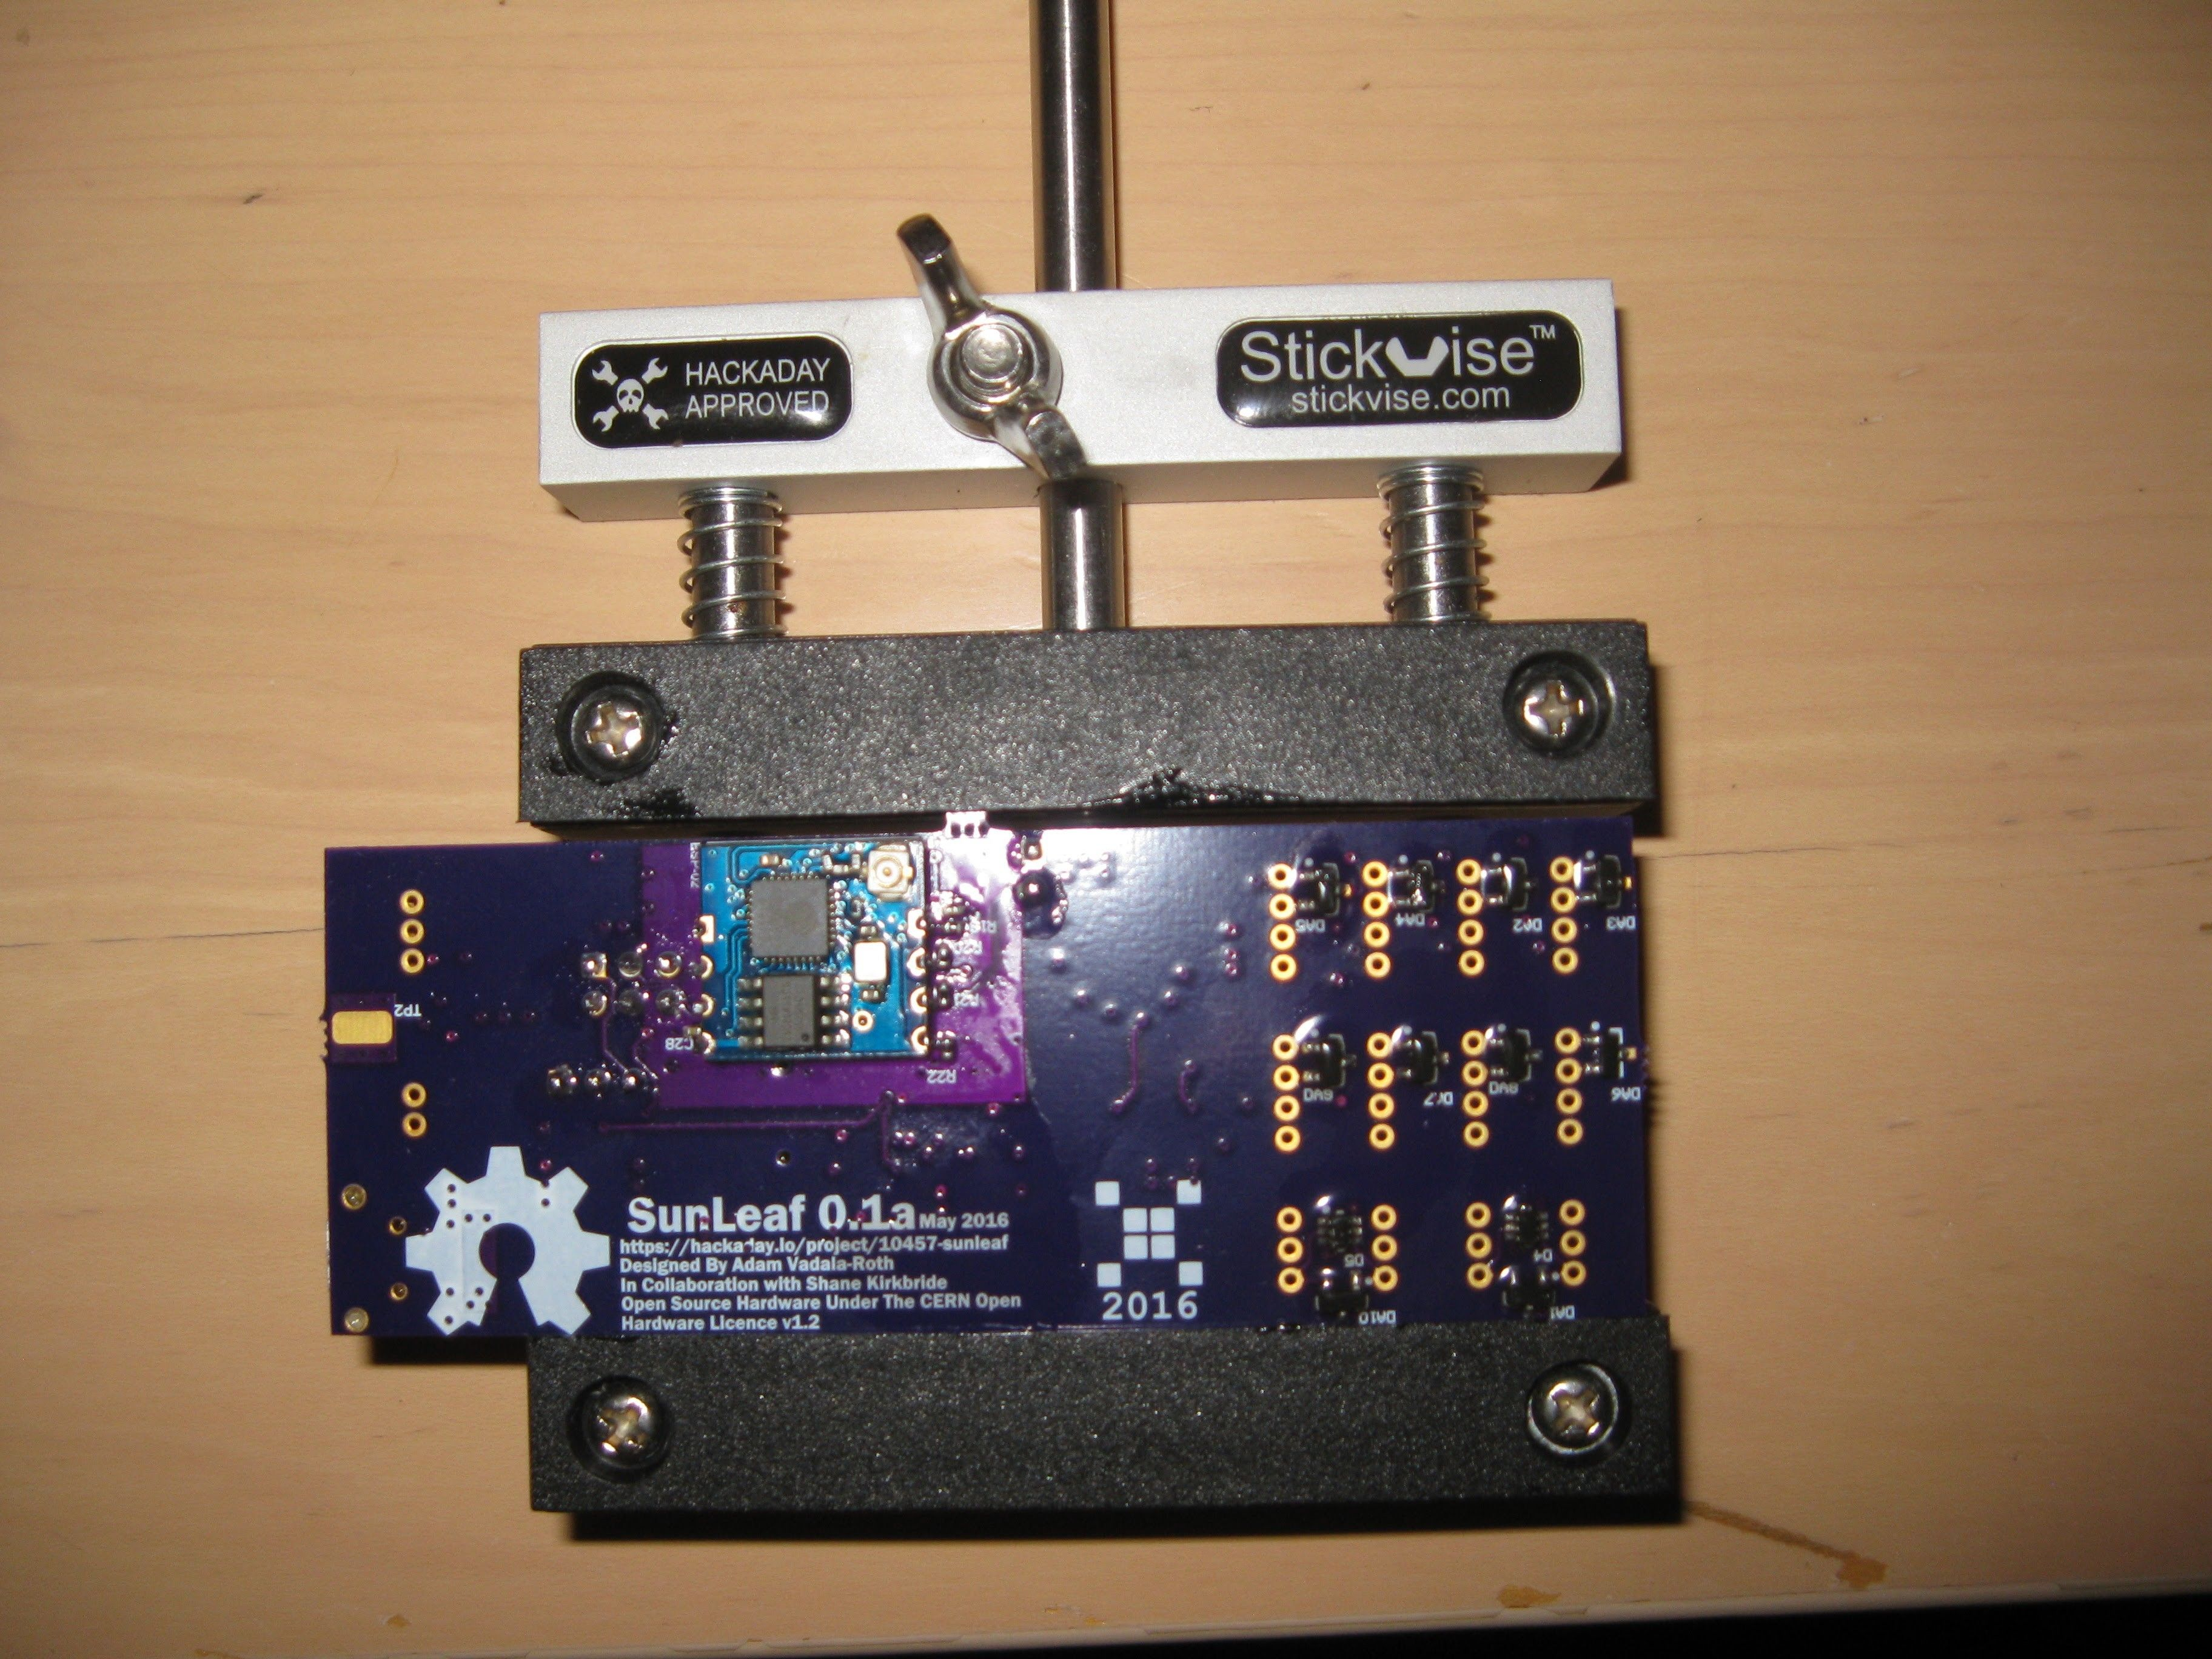 The SunLeaf is a wireless sensor module for remote sensing ...